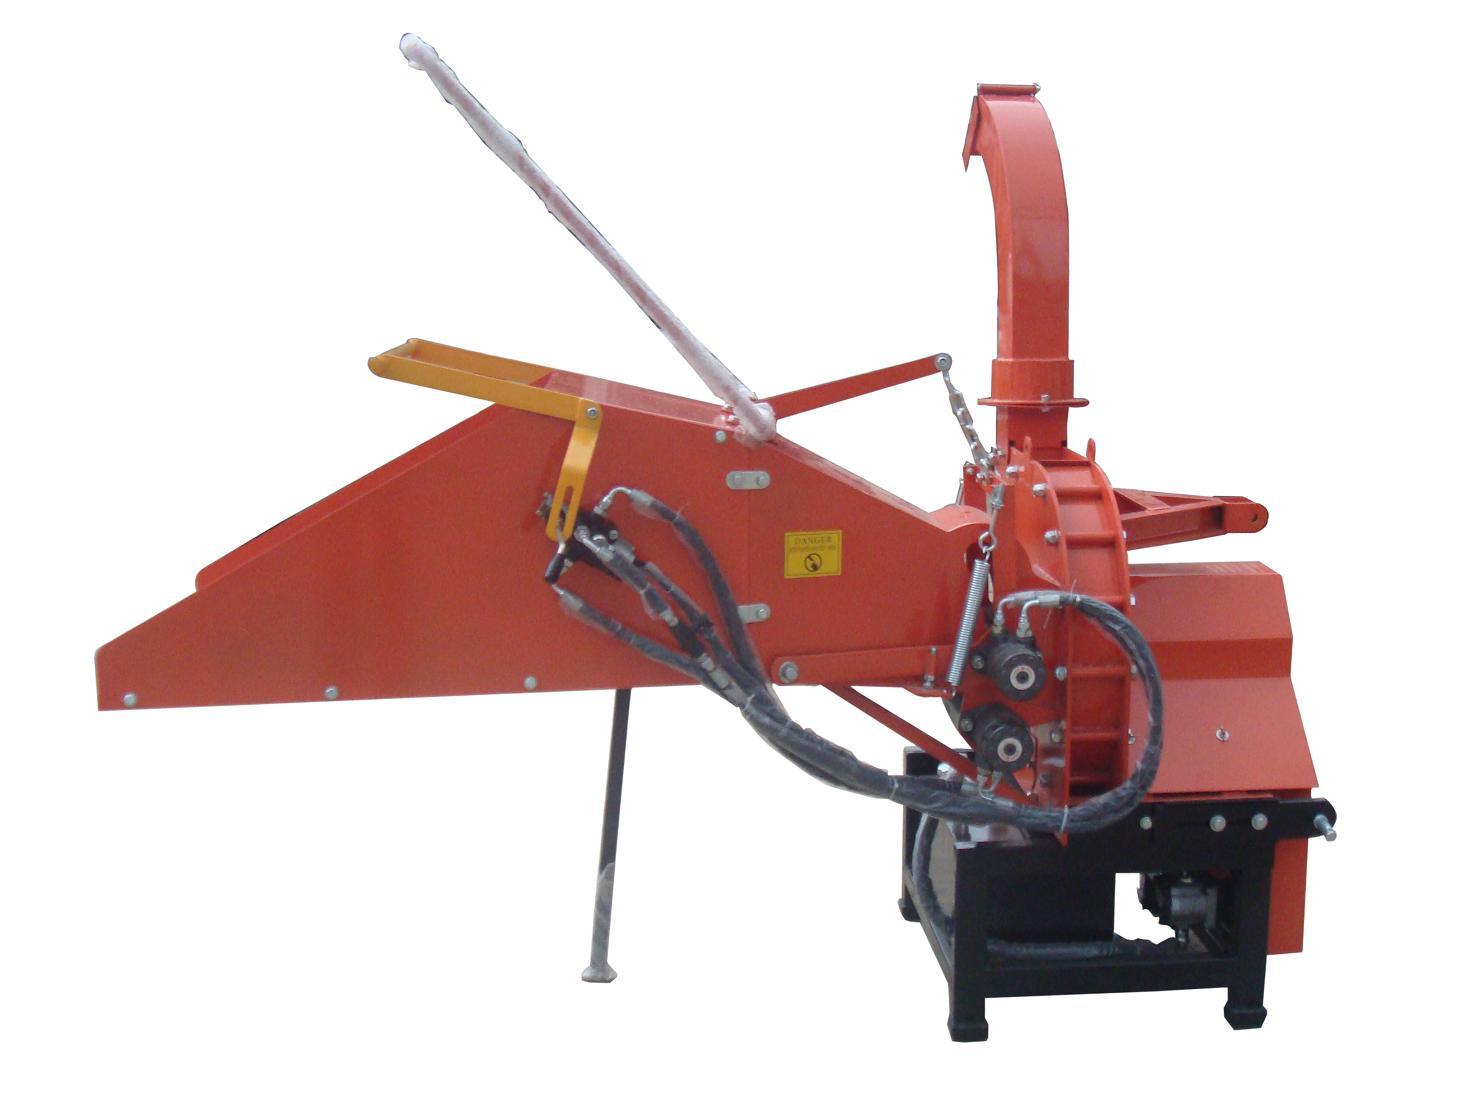 Wood Chipper Th-8, Tractor Pto Shaft Driven, CE Certificate, Two Hydraulic Feeding Rollers